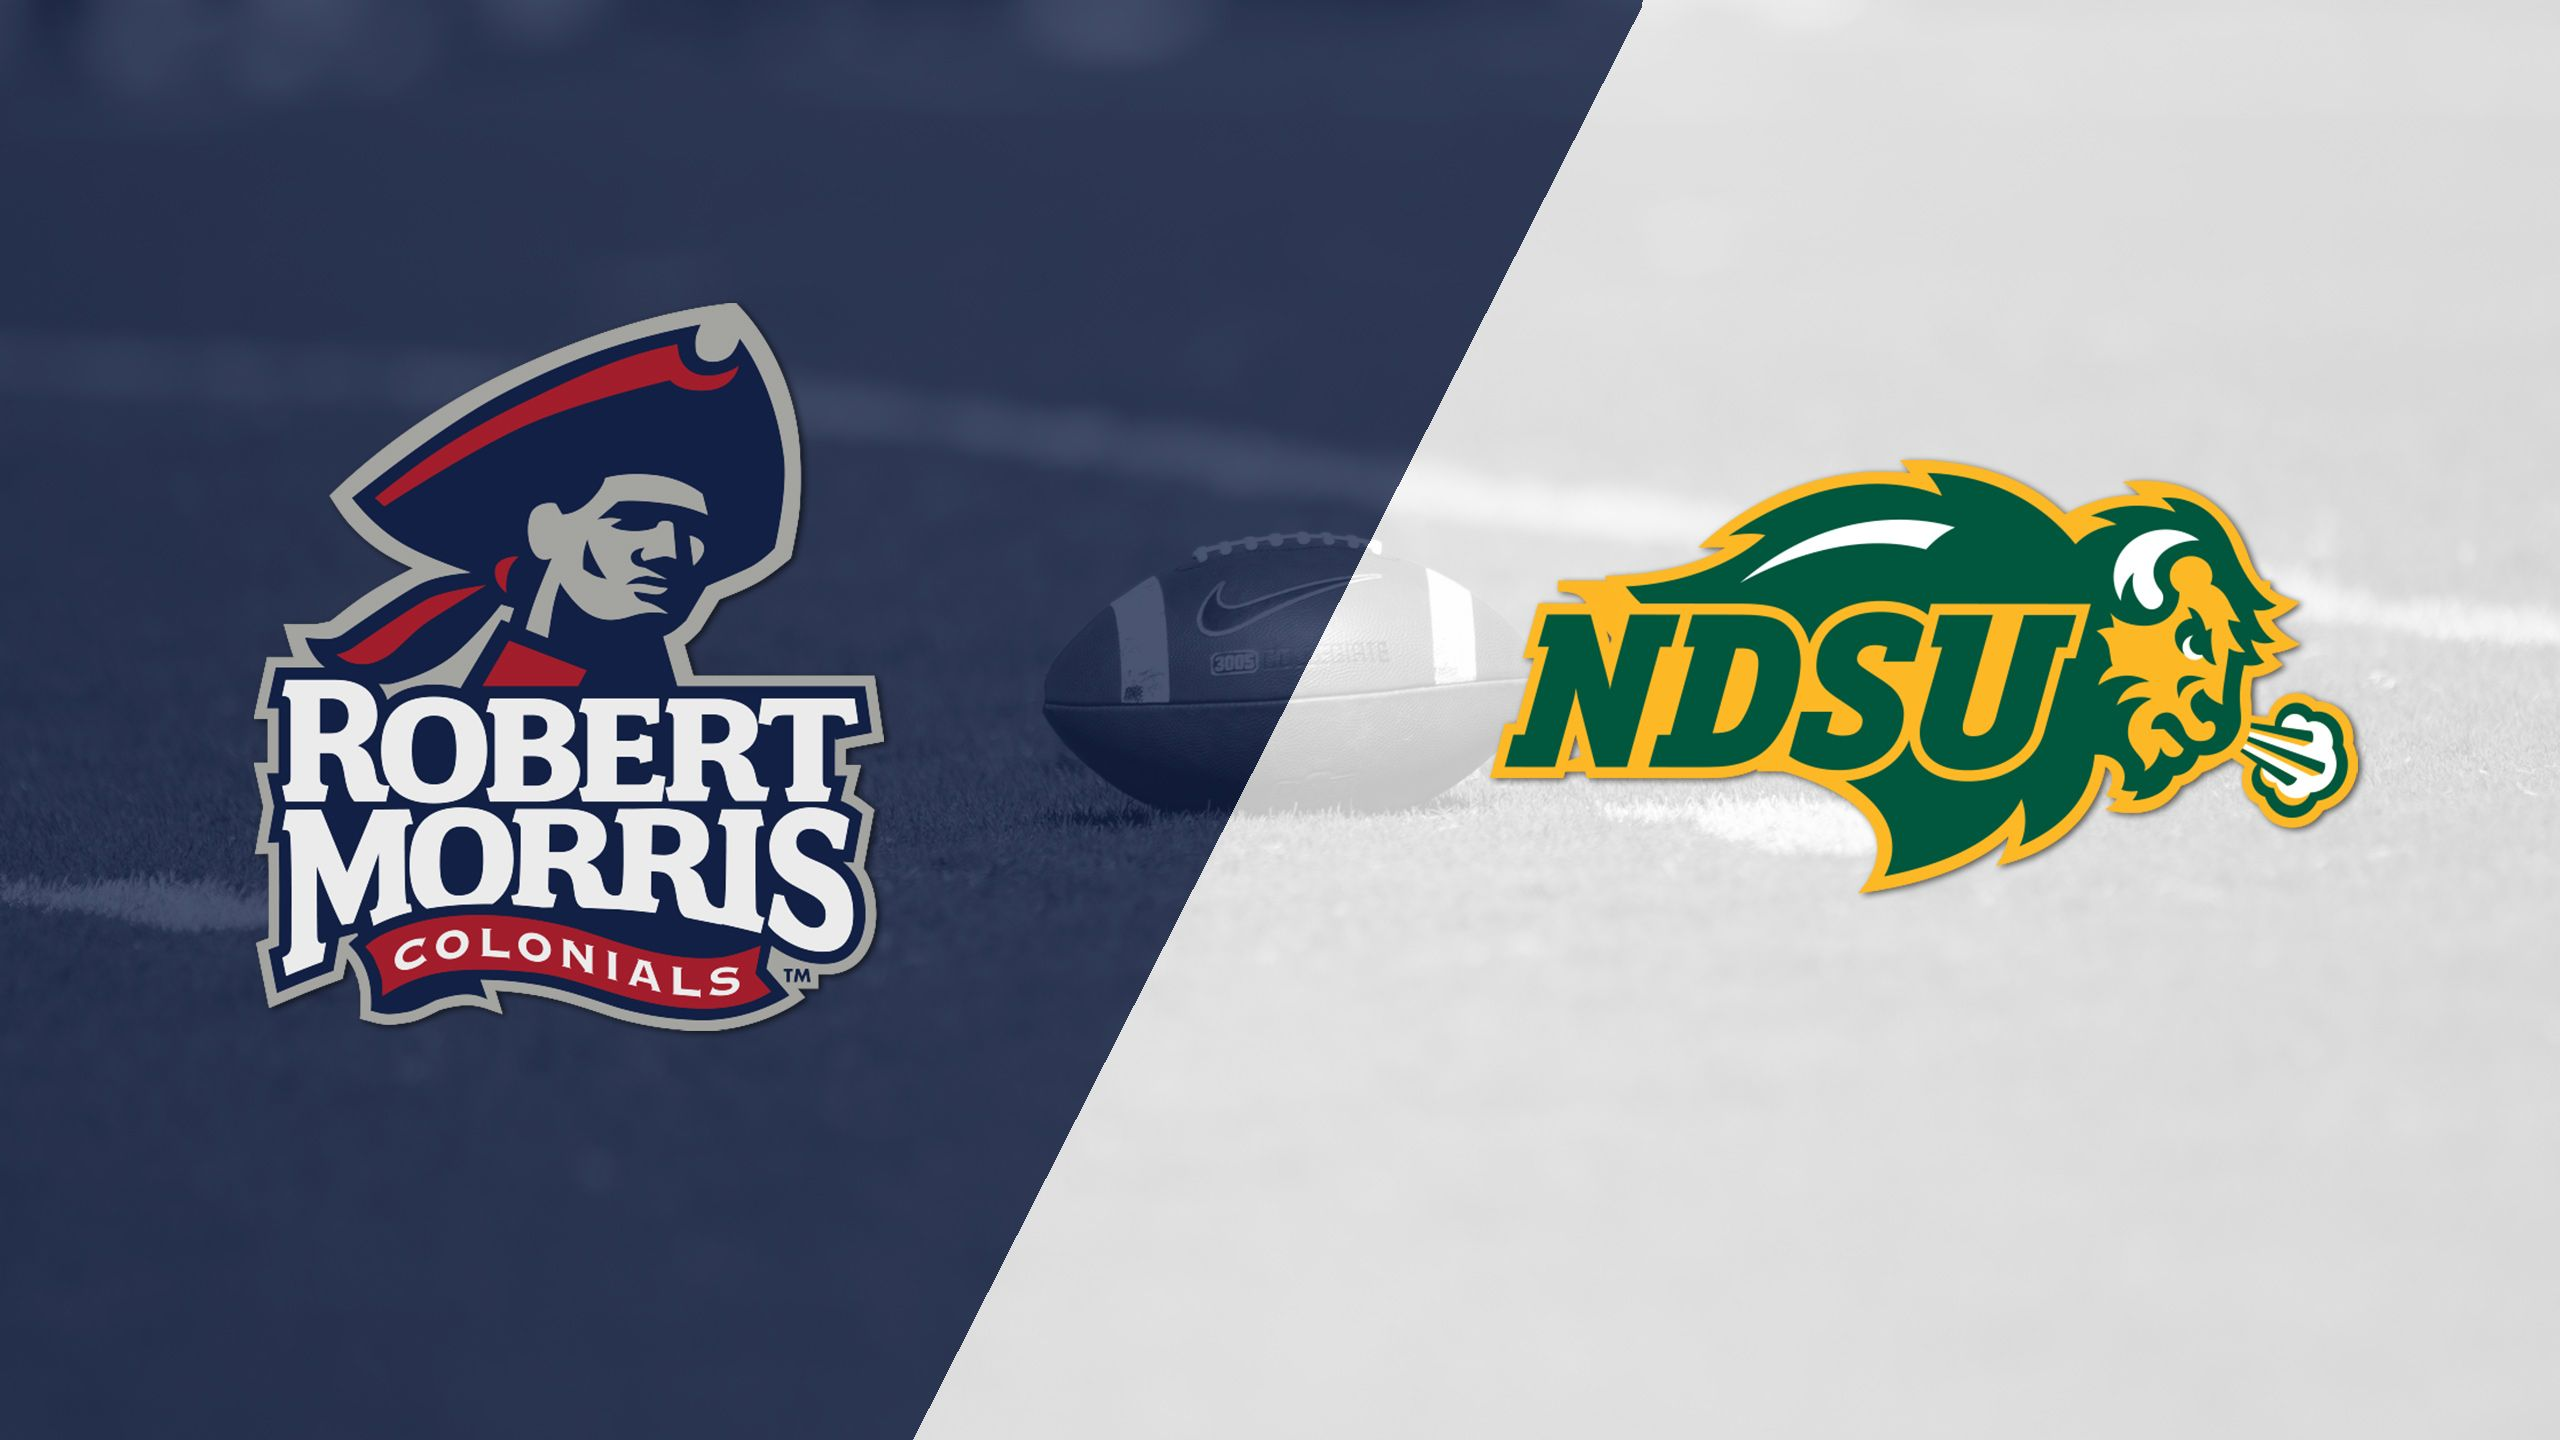 Robert Morris vs. North Dakota State (Football)